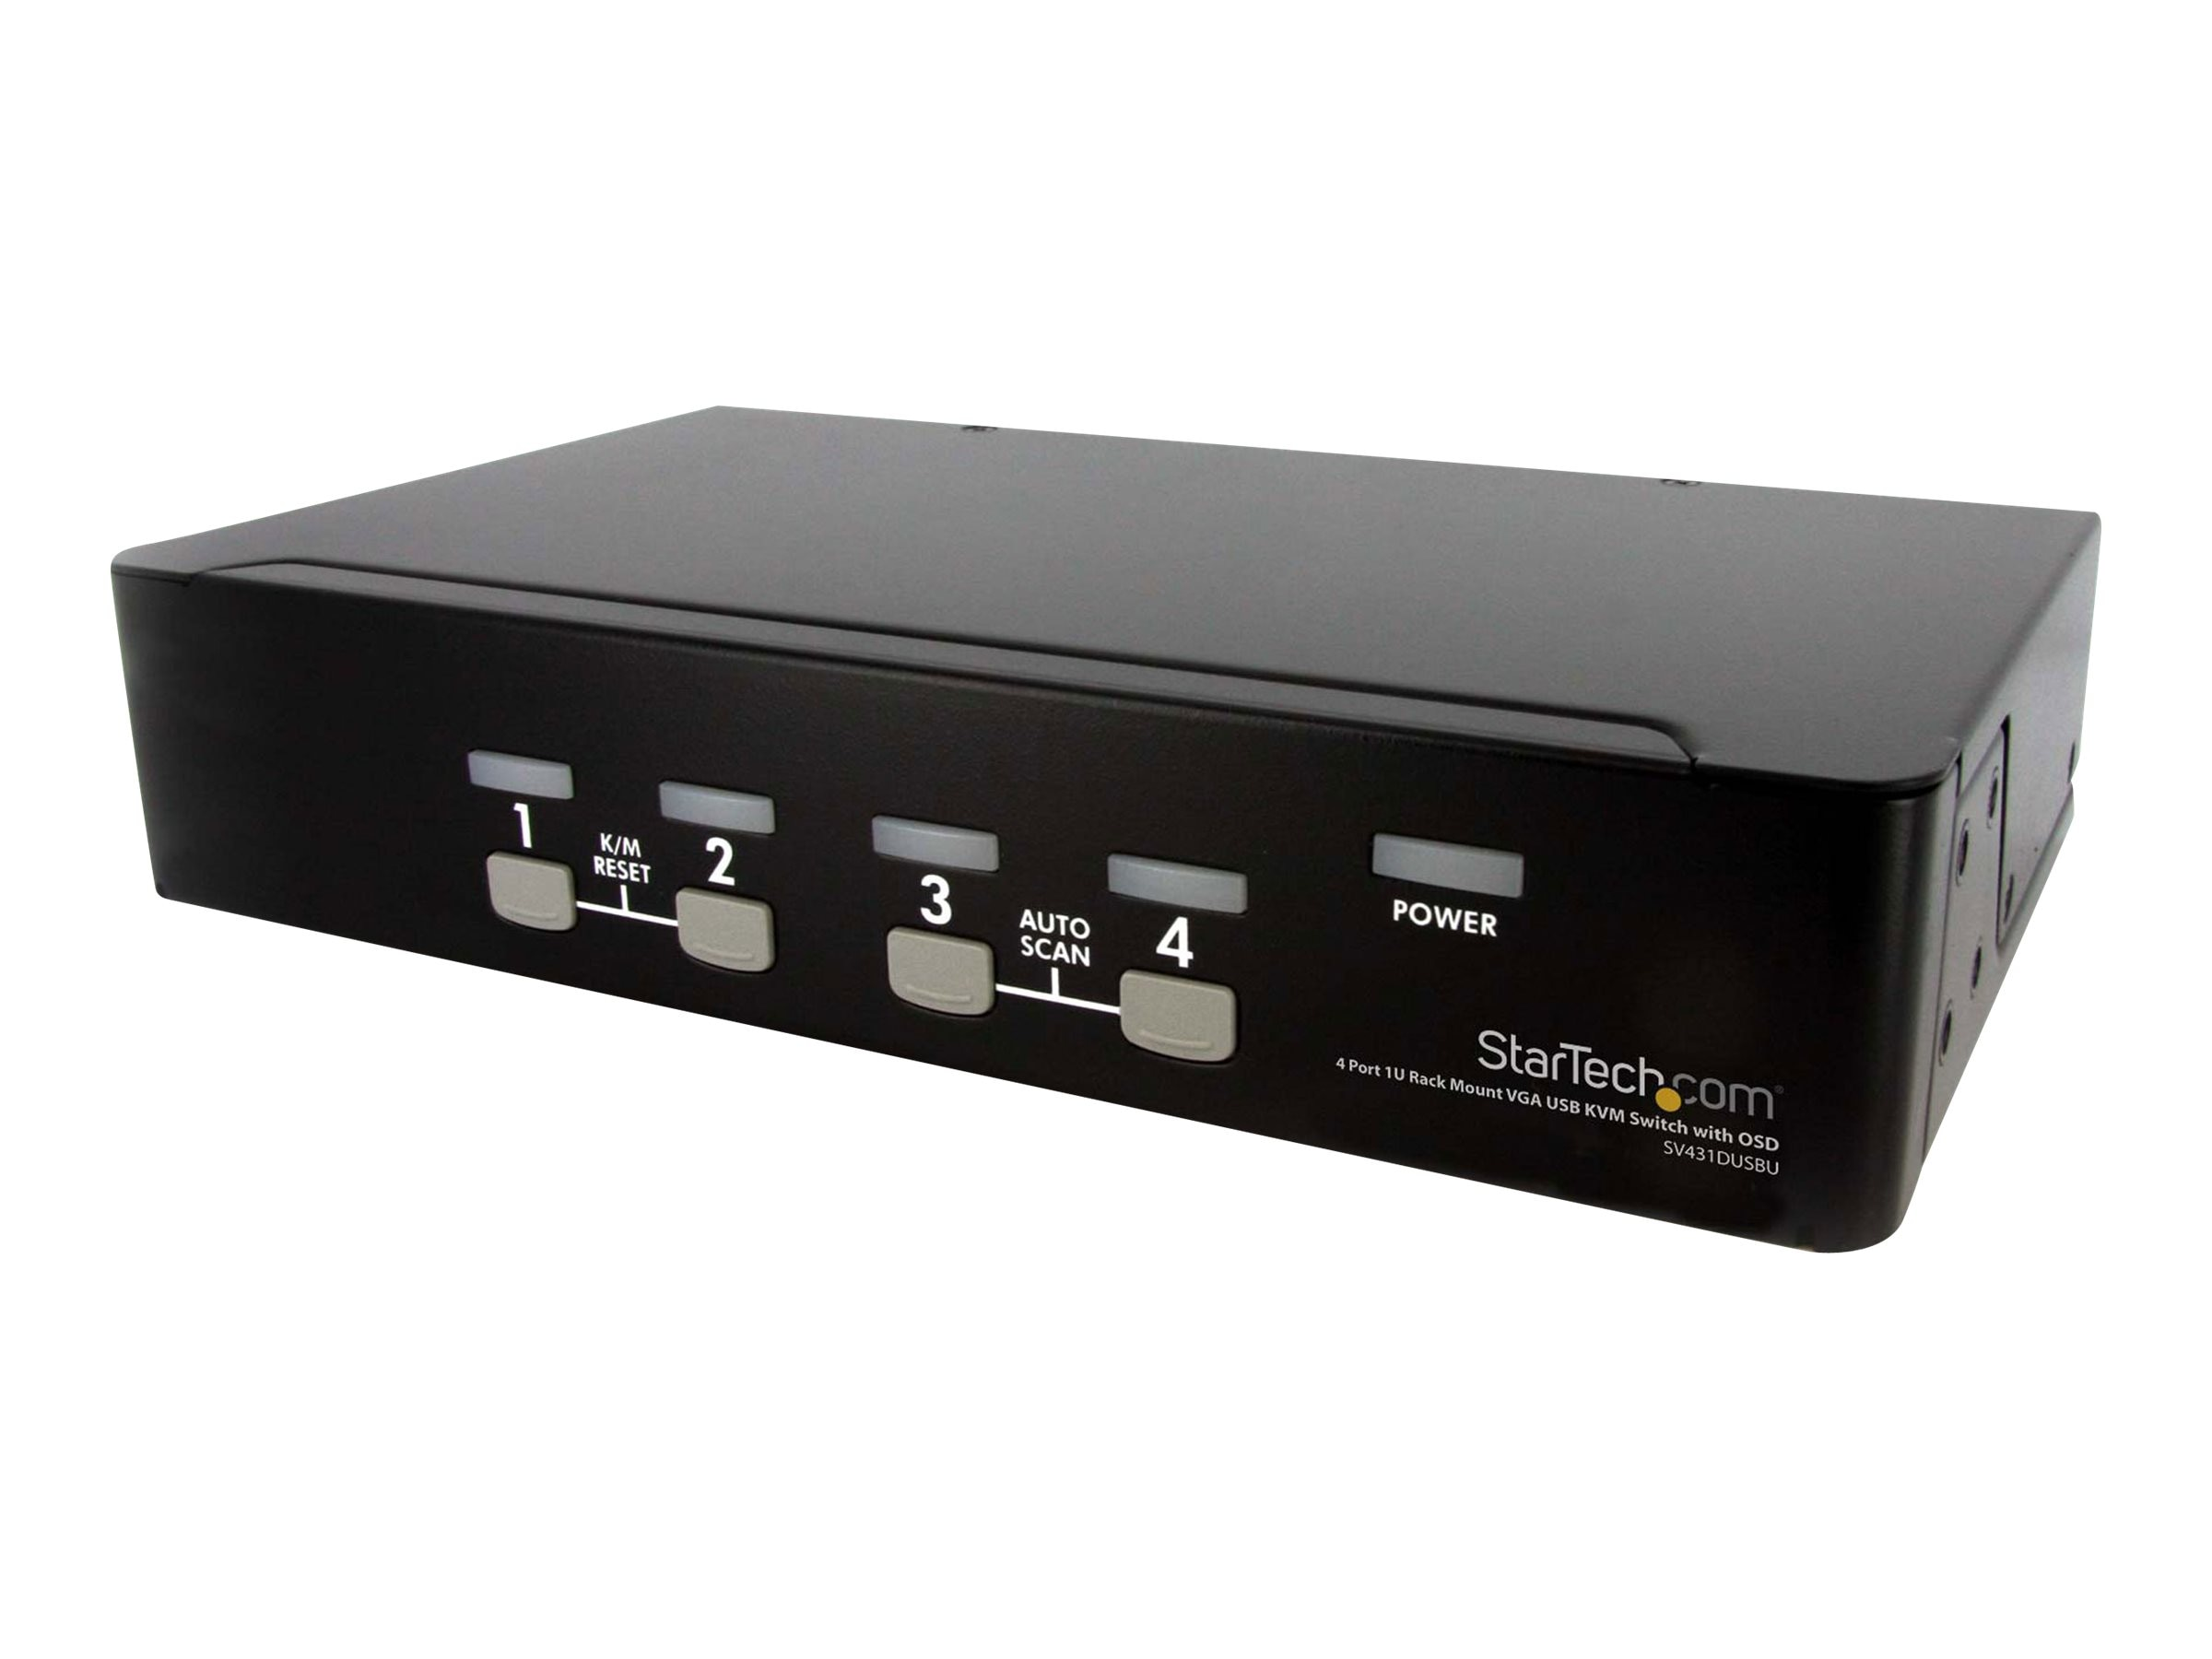 StarTech.com 4-Port Rack Mount USB KVM Switch with OSD, 1U, SV431DUSBU